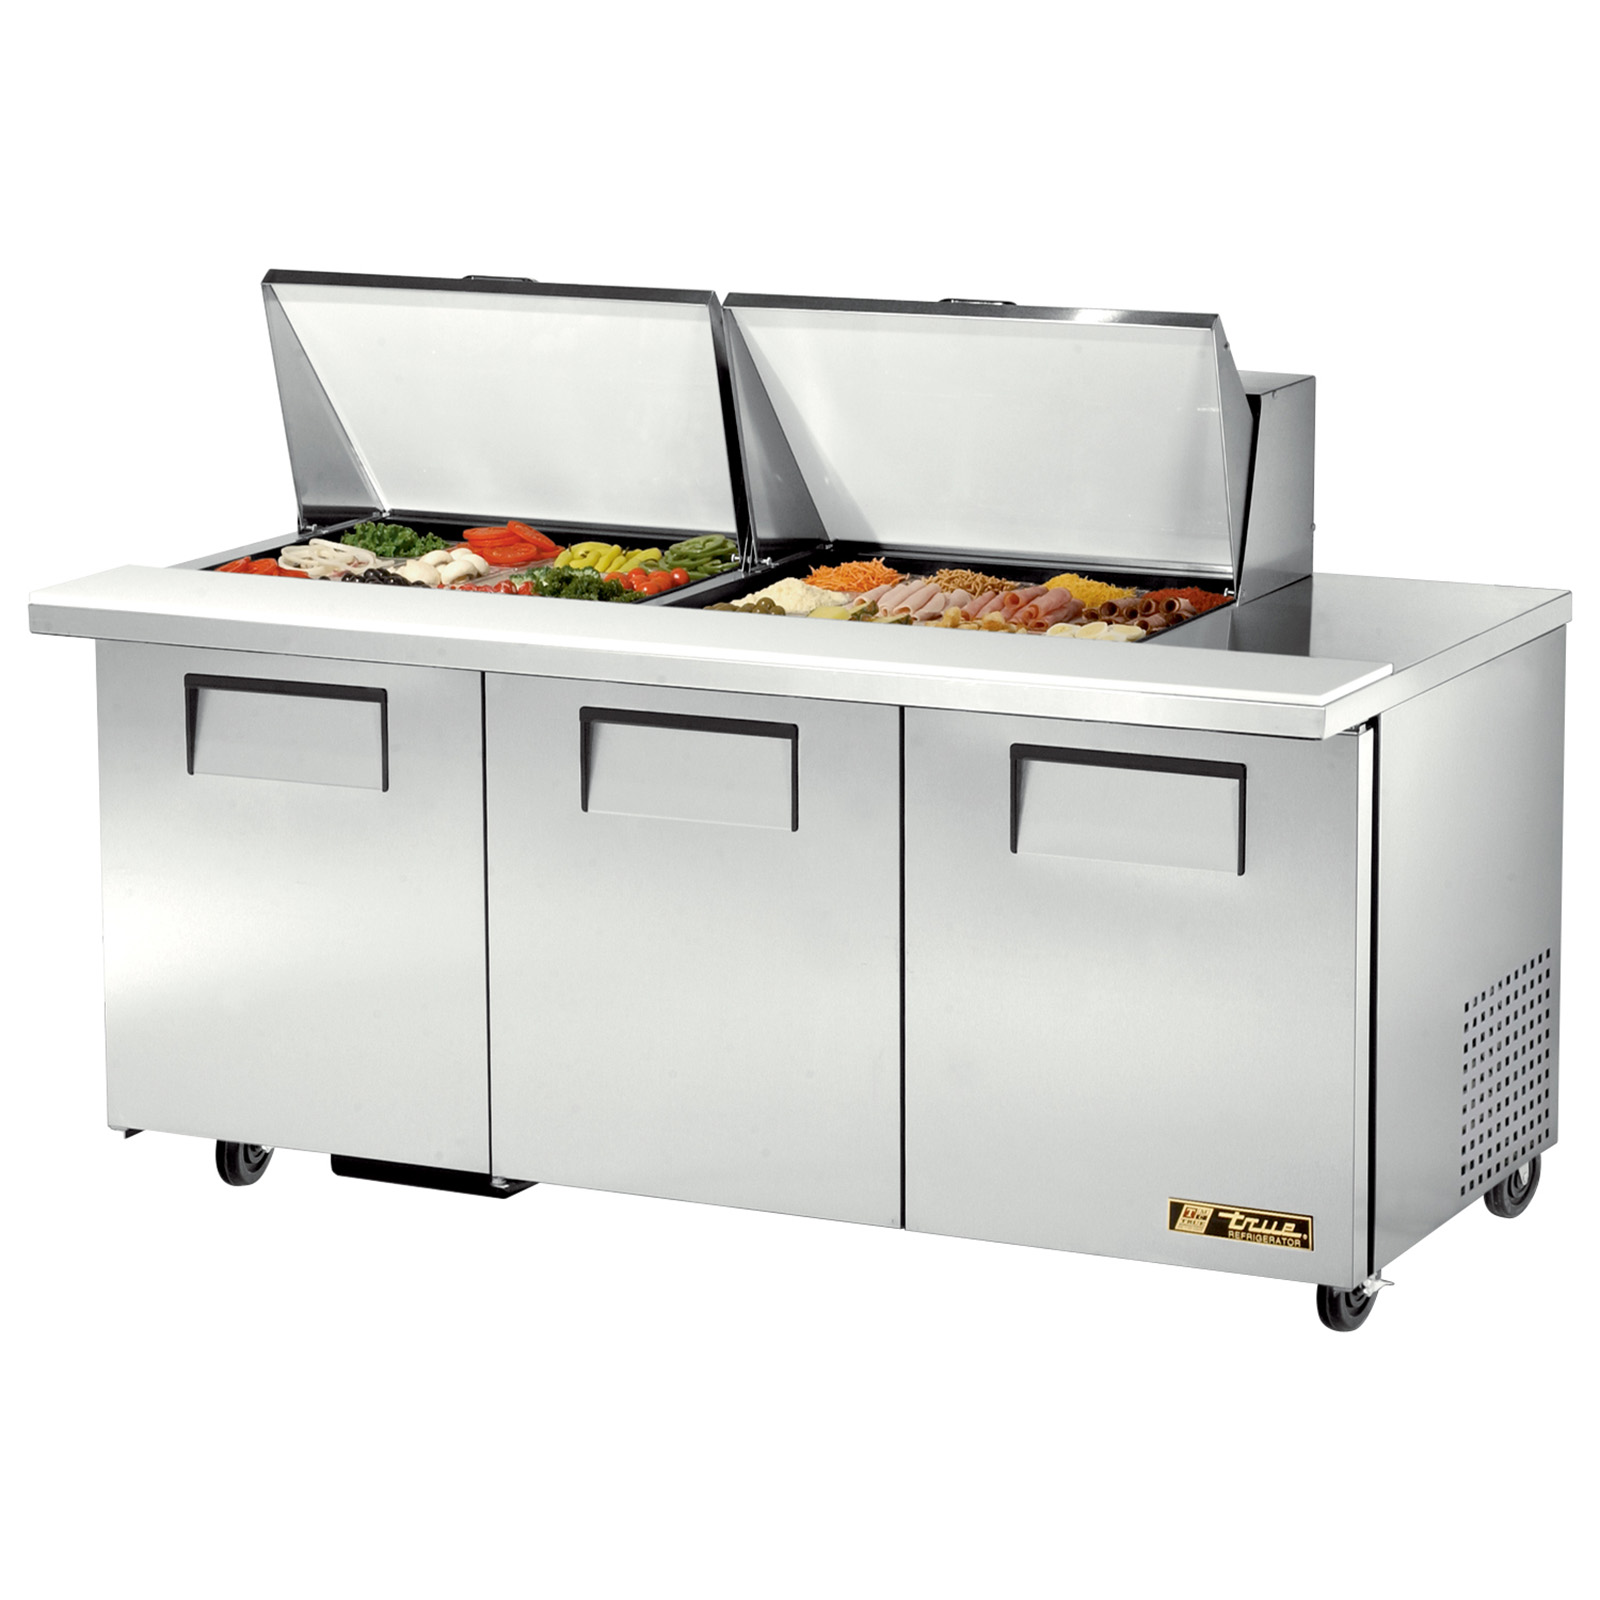 TSSU-72-24M-B-ST True - Mega Top Sandwich/Salad Unit (24) 1/6 size (4